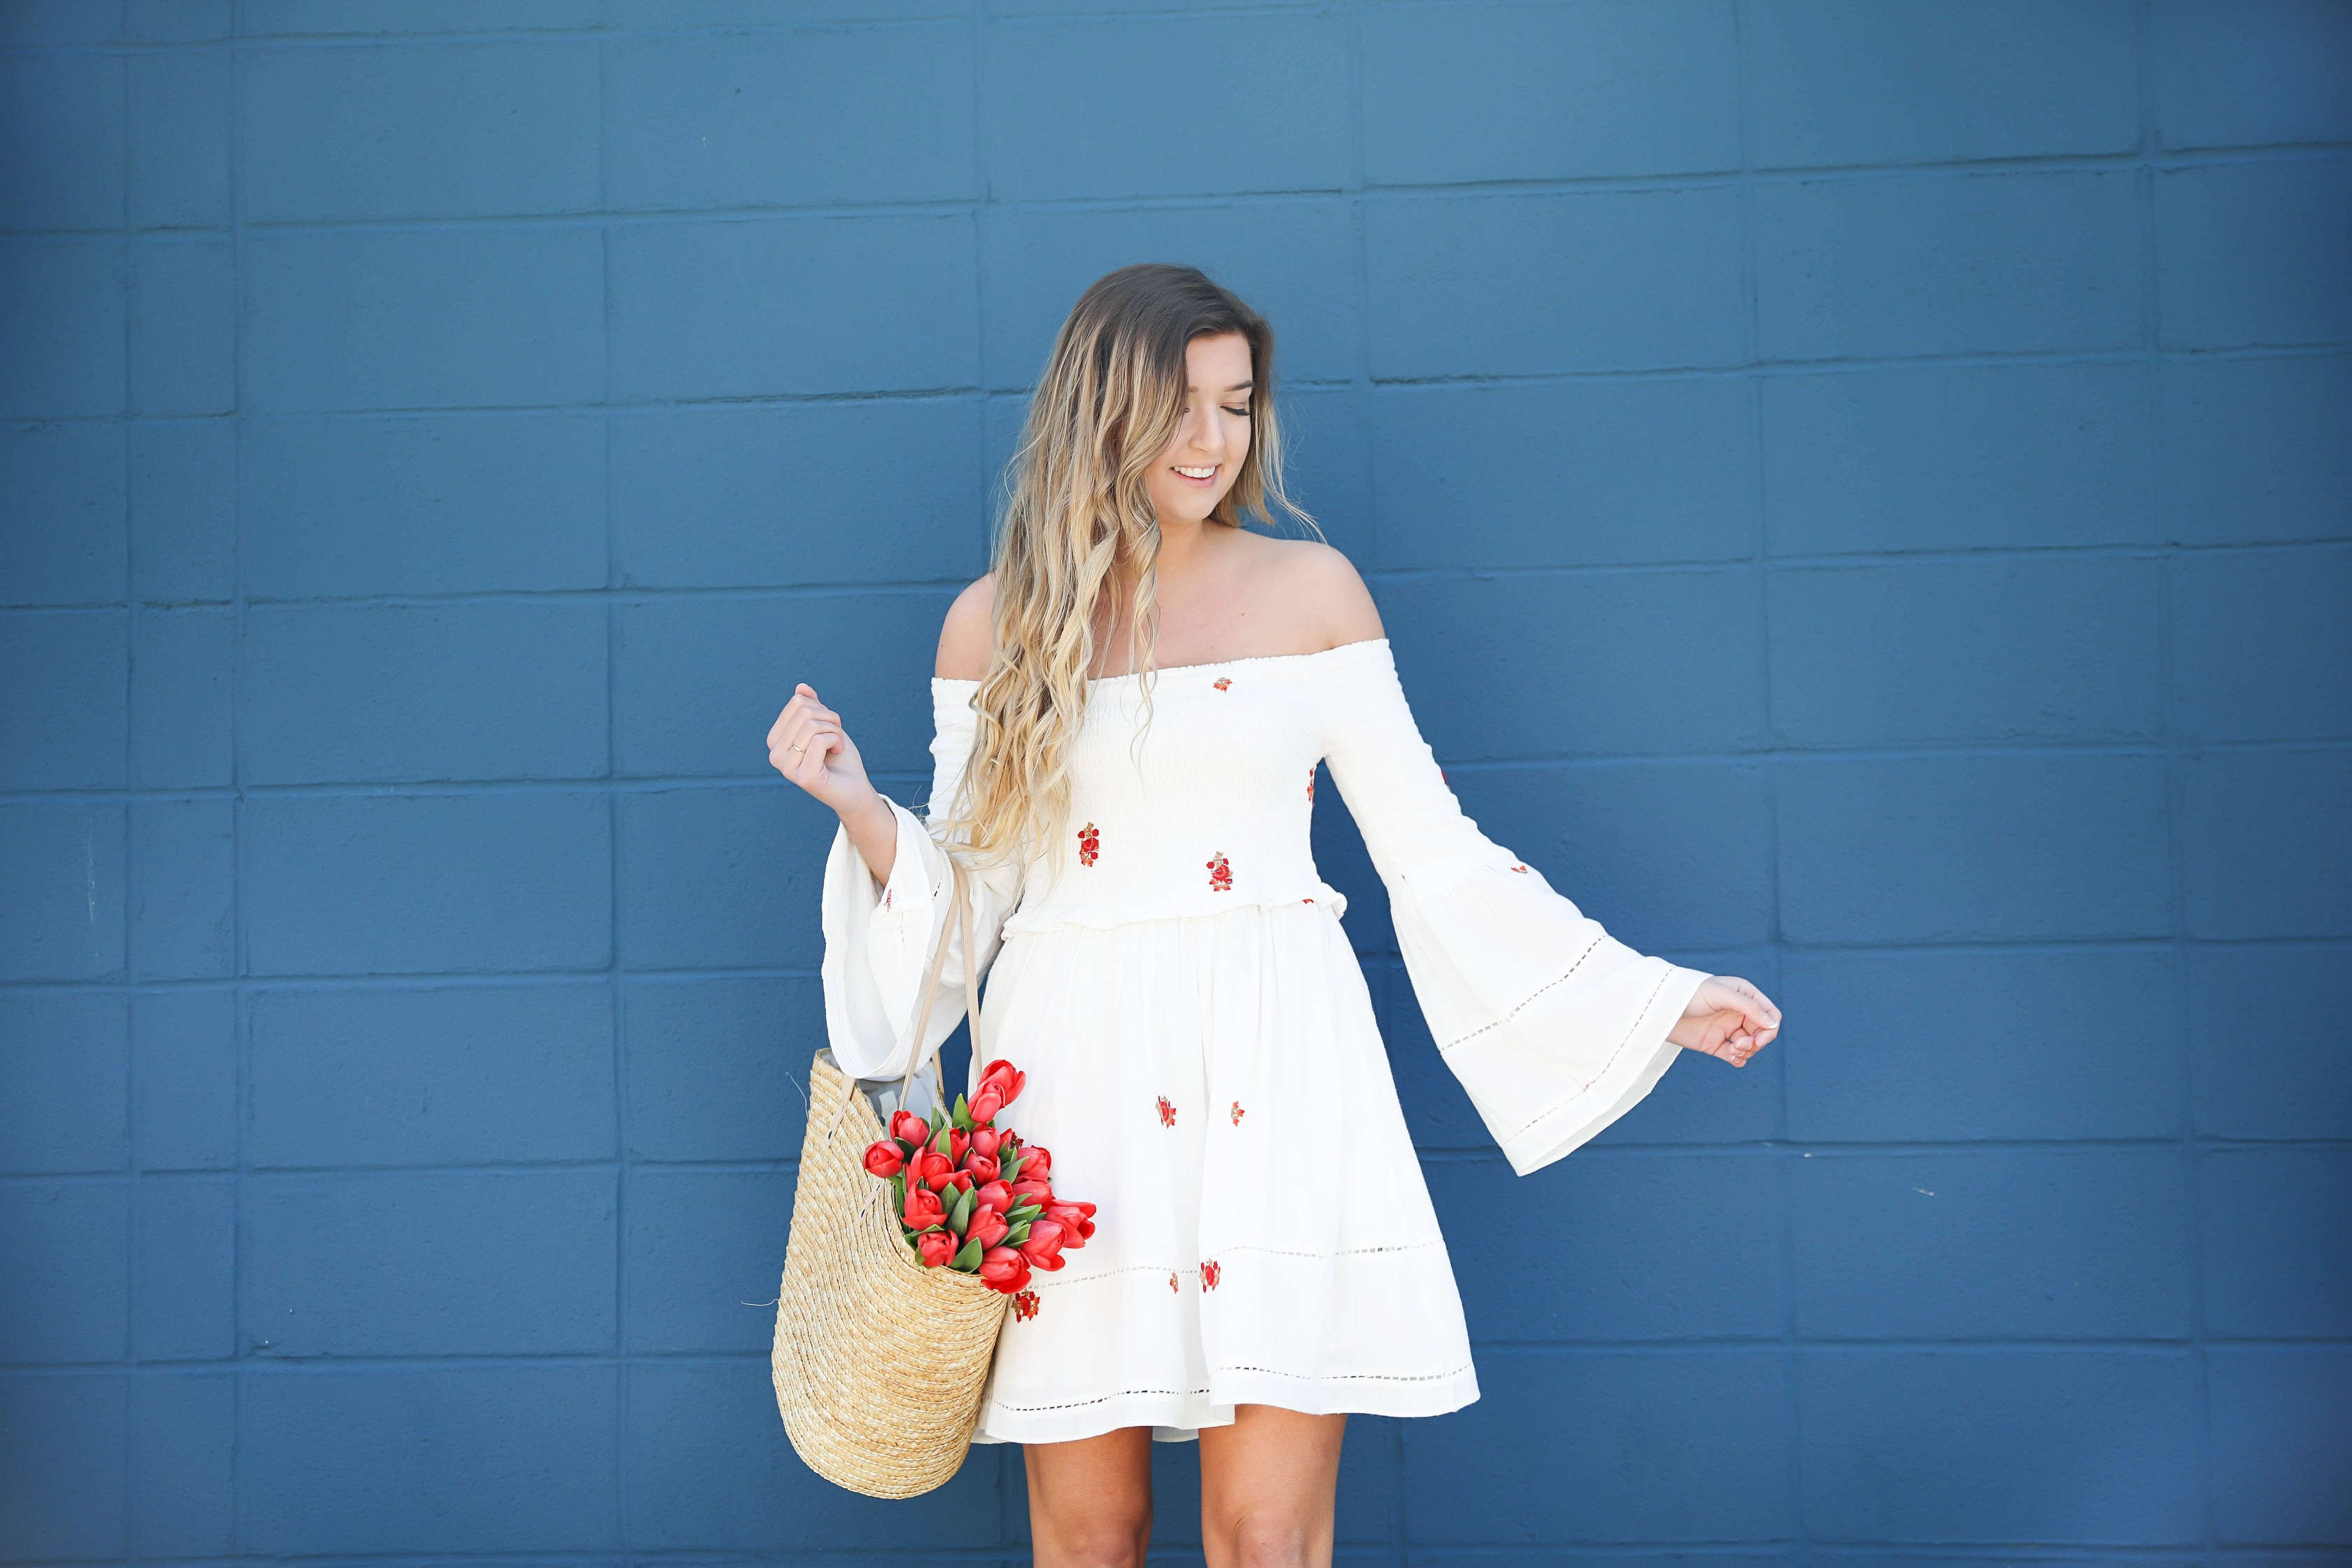 White off the shoulder dress with red embroidery by Free People! Love this look with red tulips in a straw bag and cute wedges! Perfect spring look on fashion blog daily dose of charm by lauren lindmark